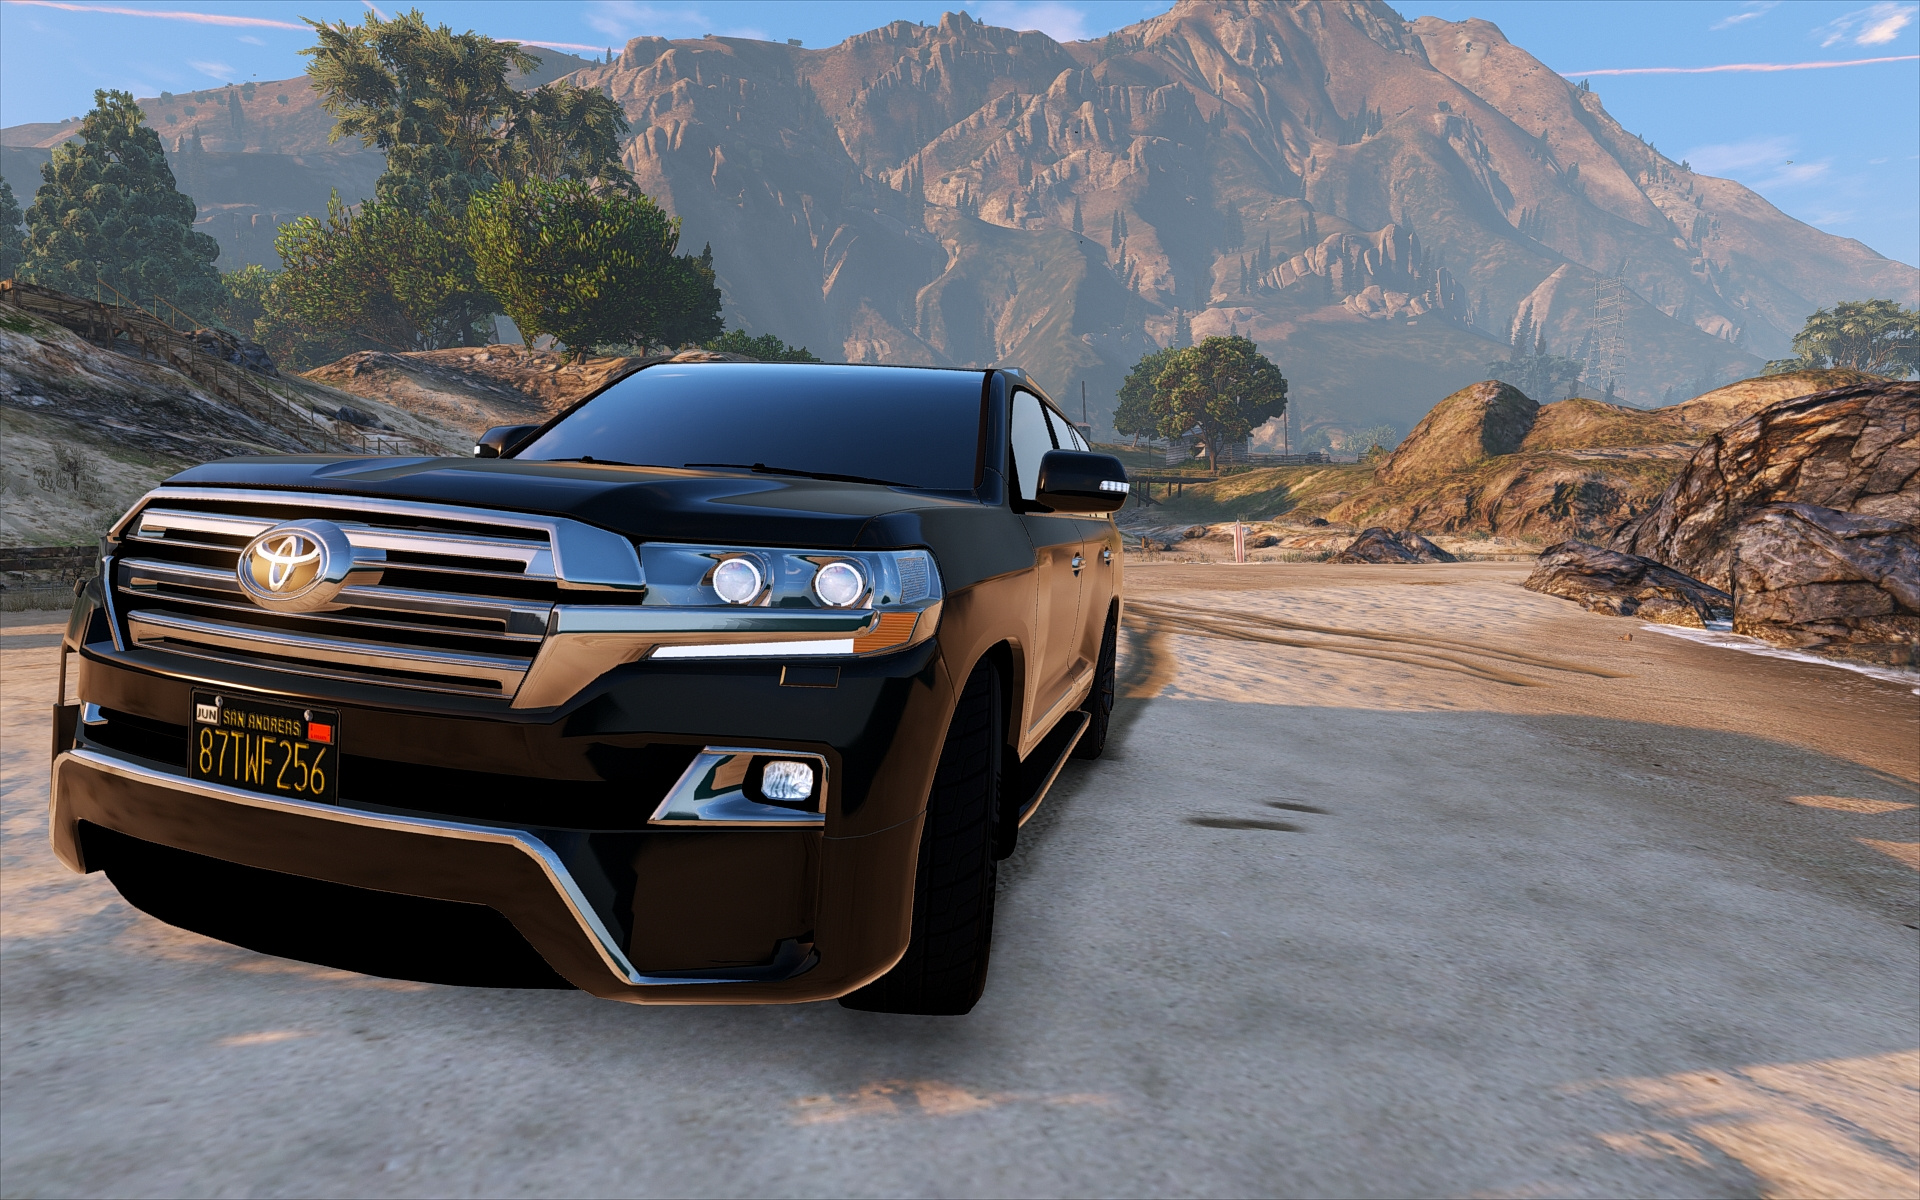 Toyota Land Cruiser 200 Vxr Real Physics Gta5 Modscom